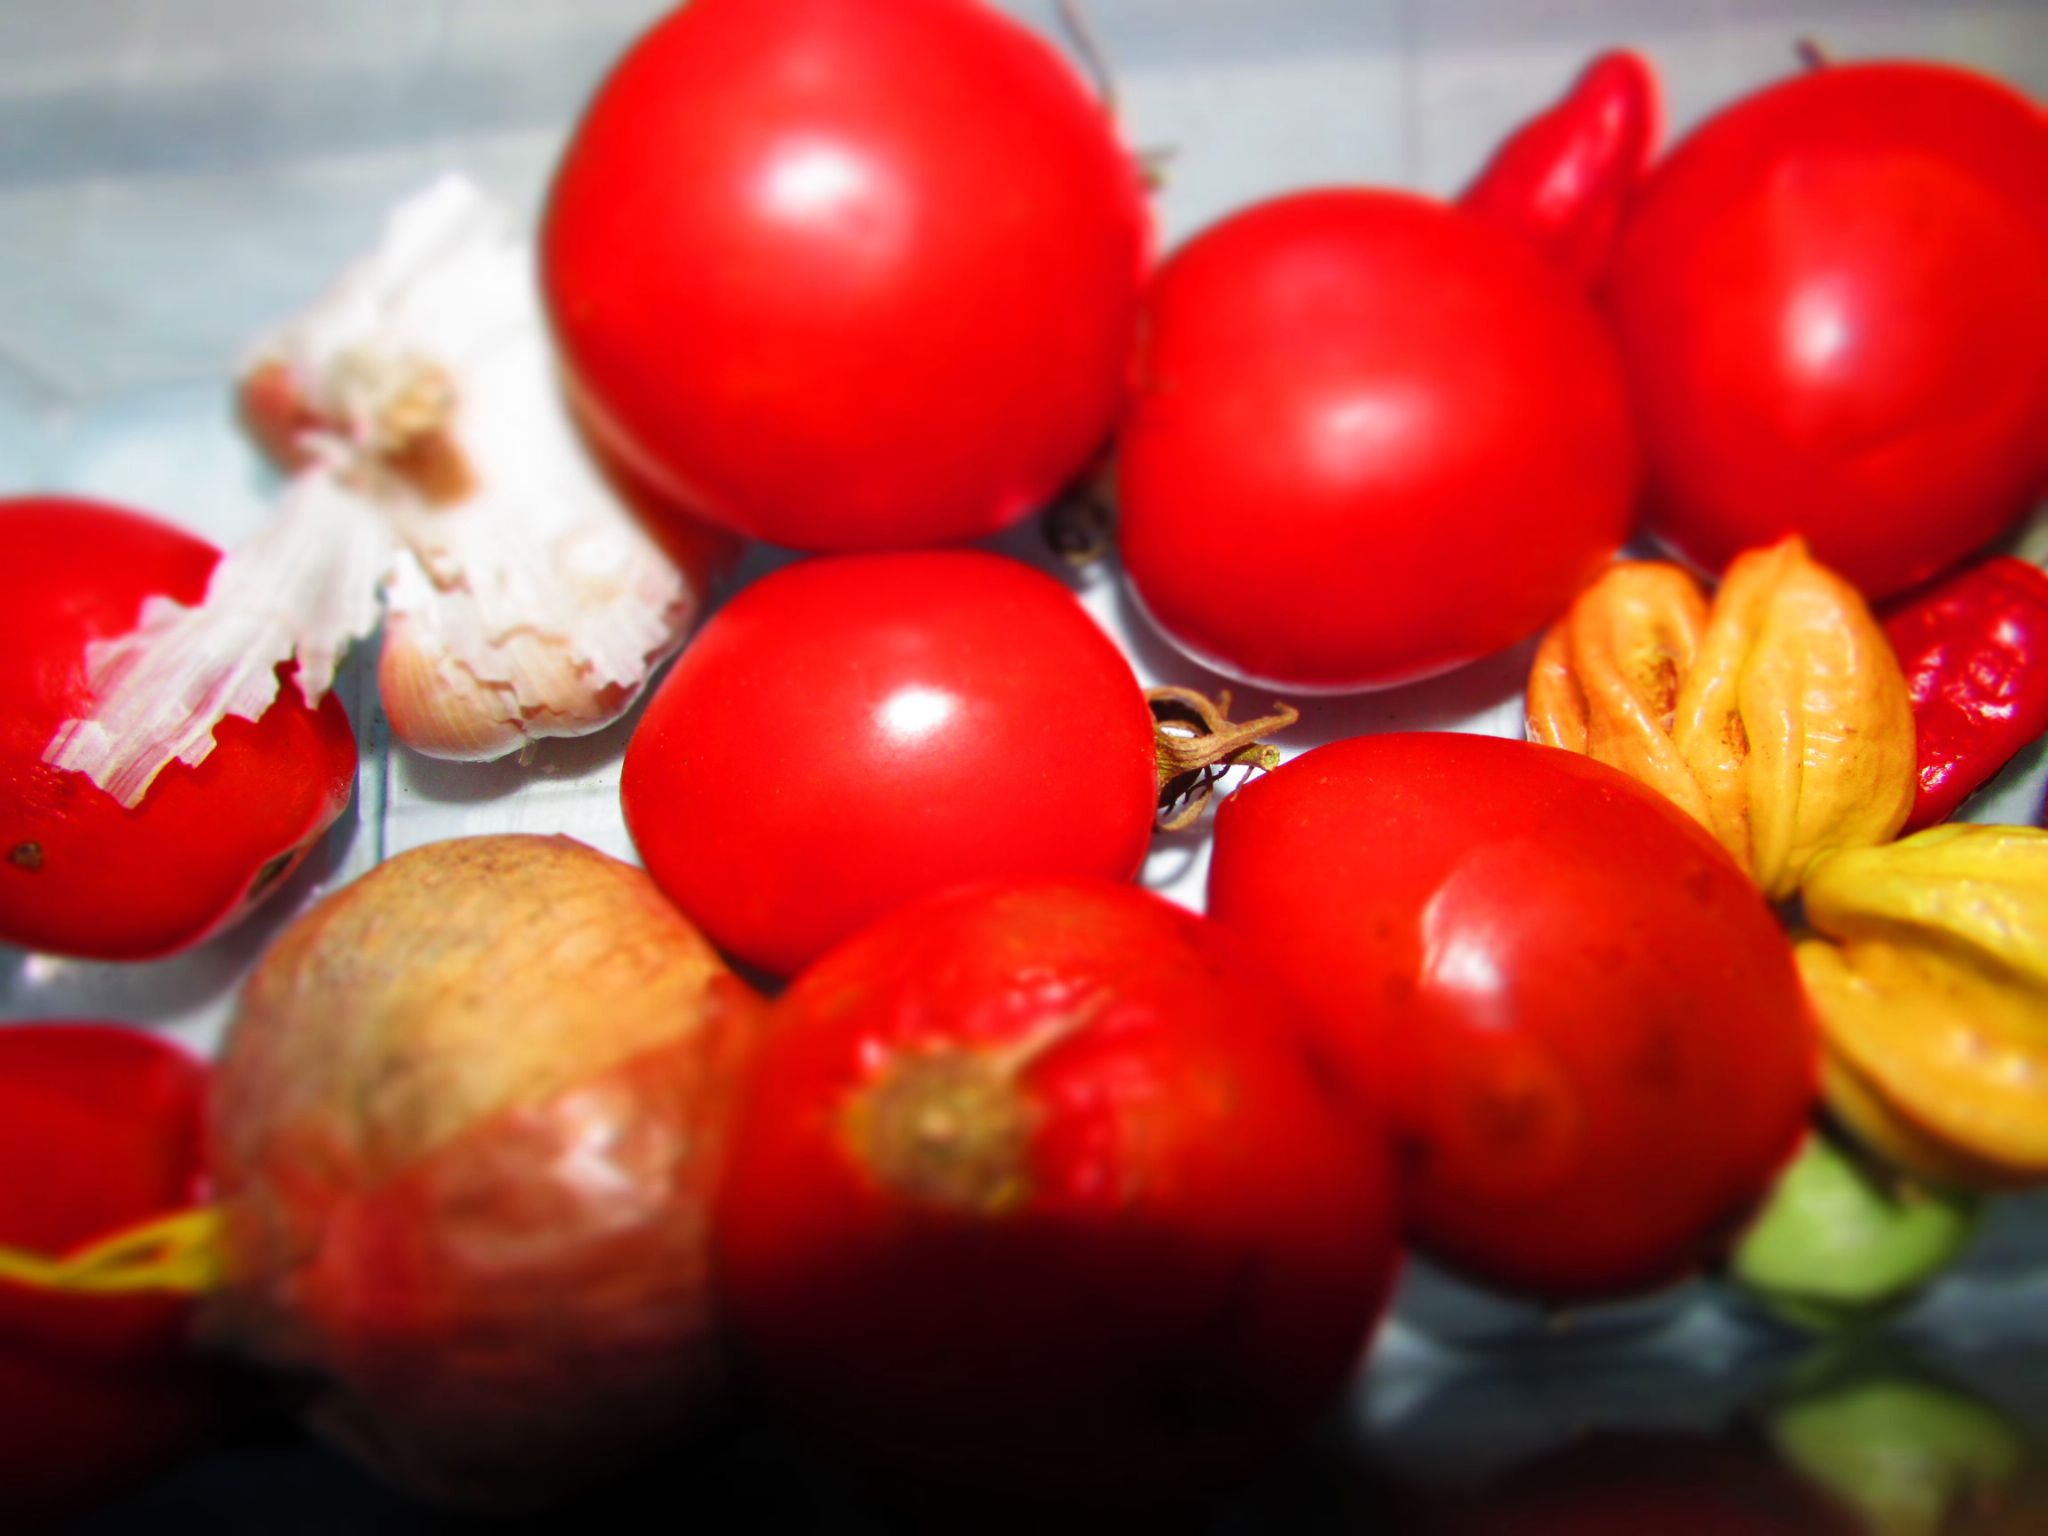 Vegetable by Axelle